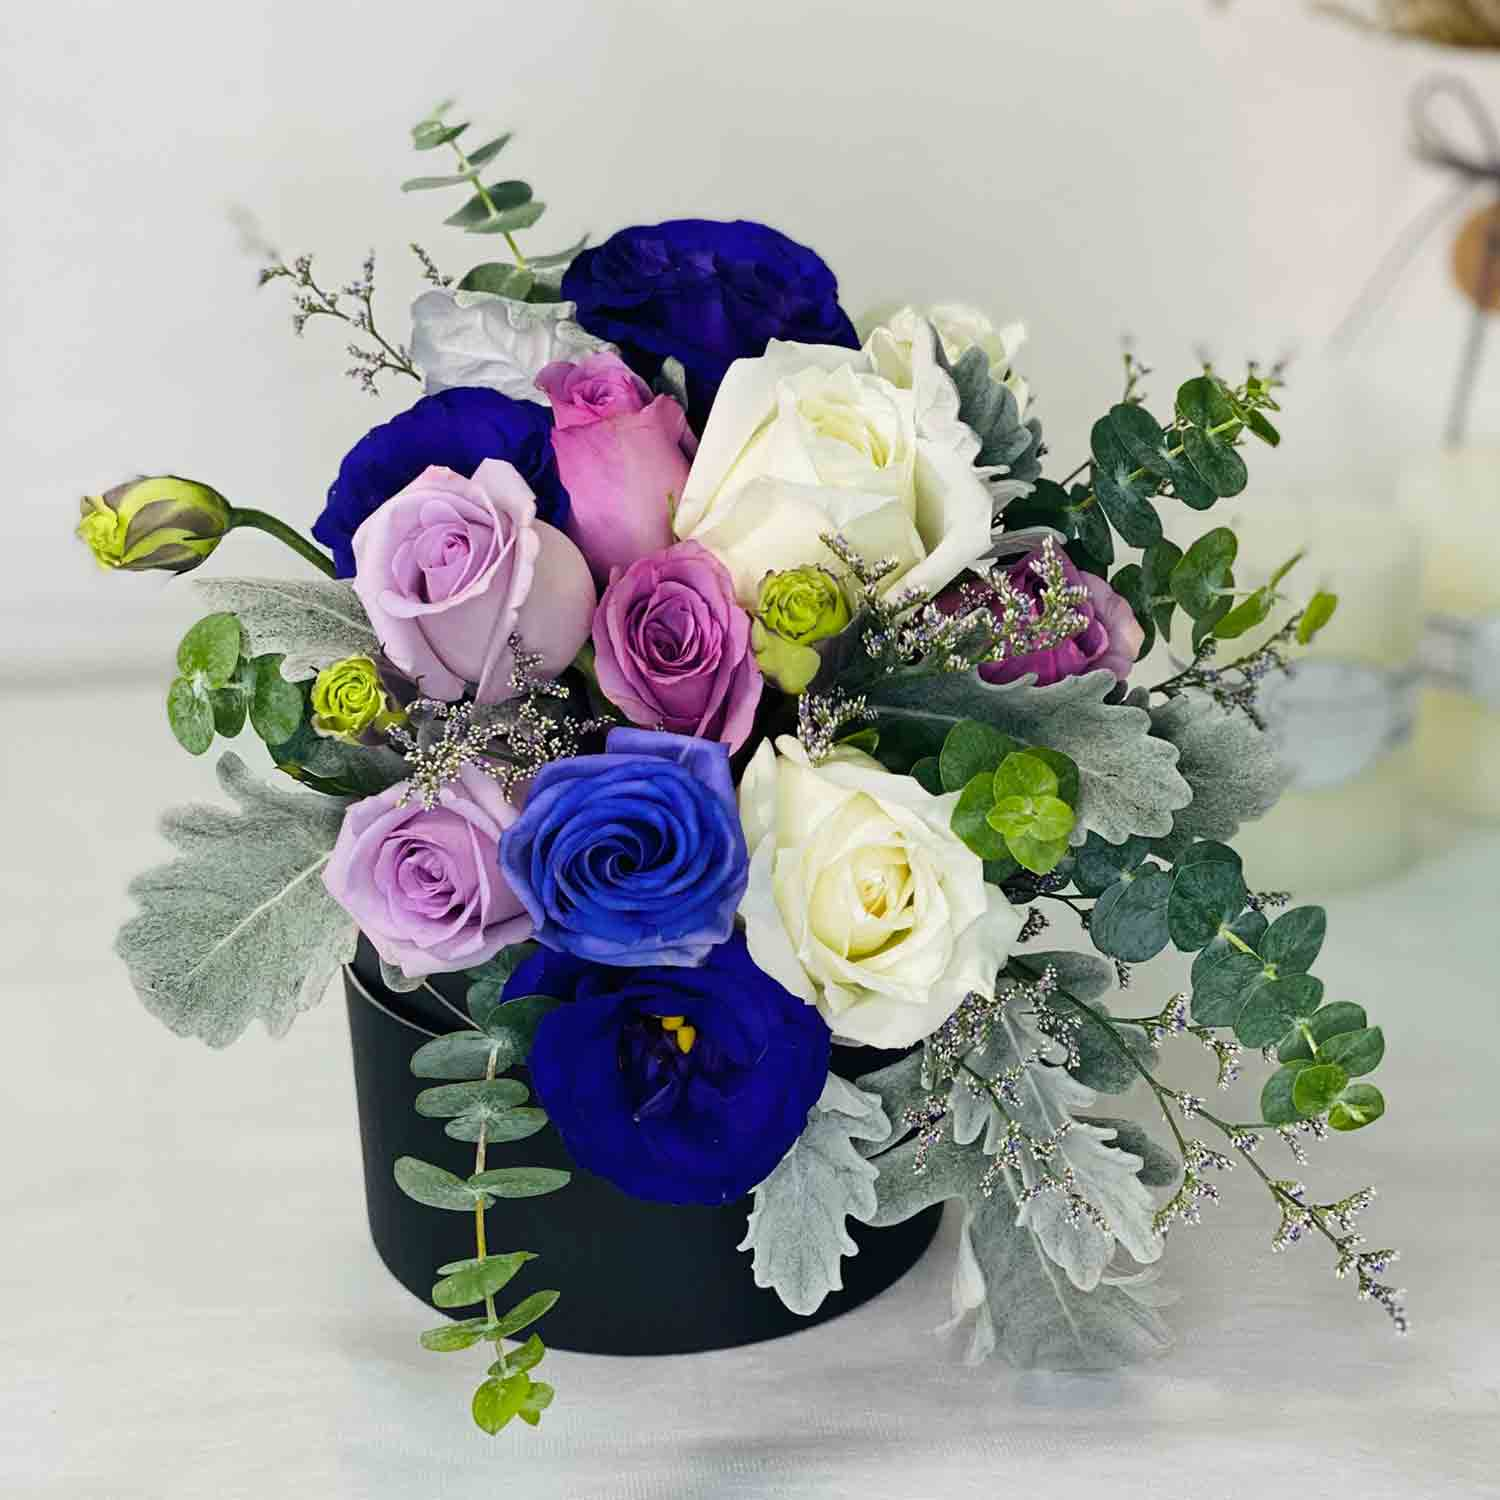 Box Of Mixed Roses: Blue Flowers